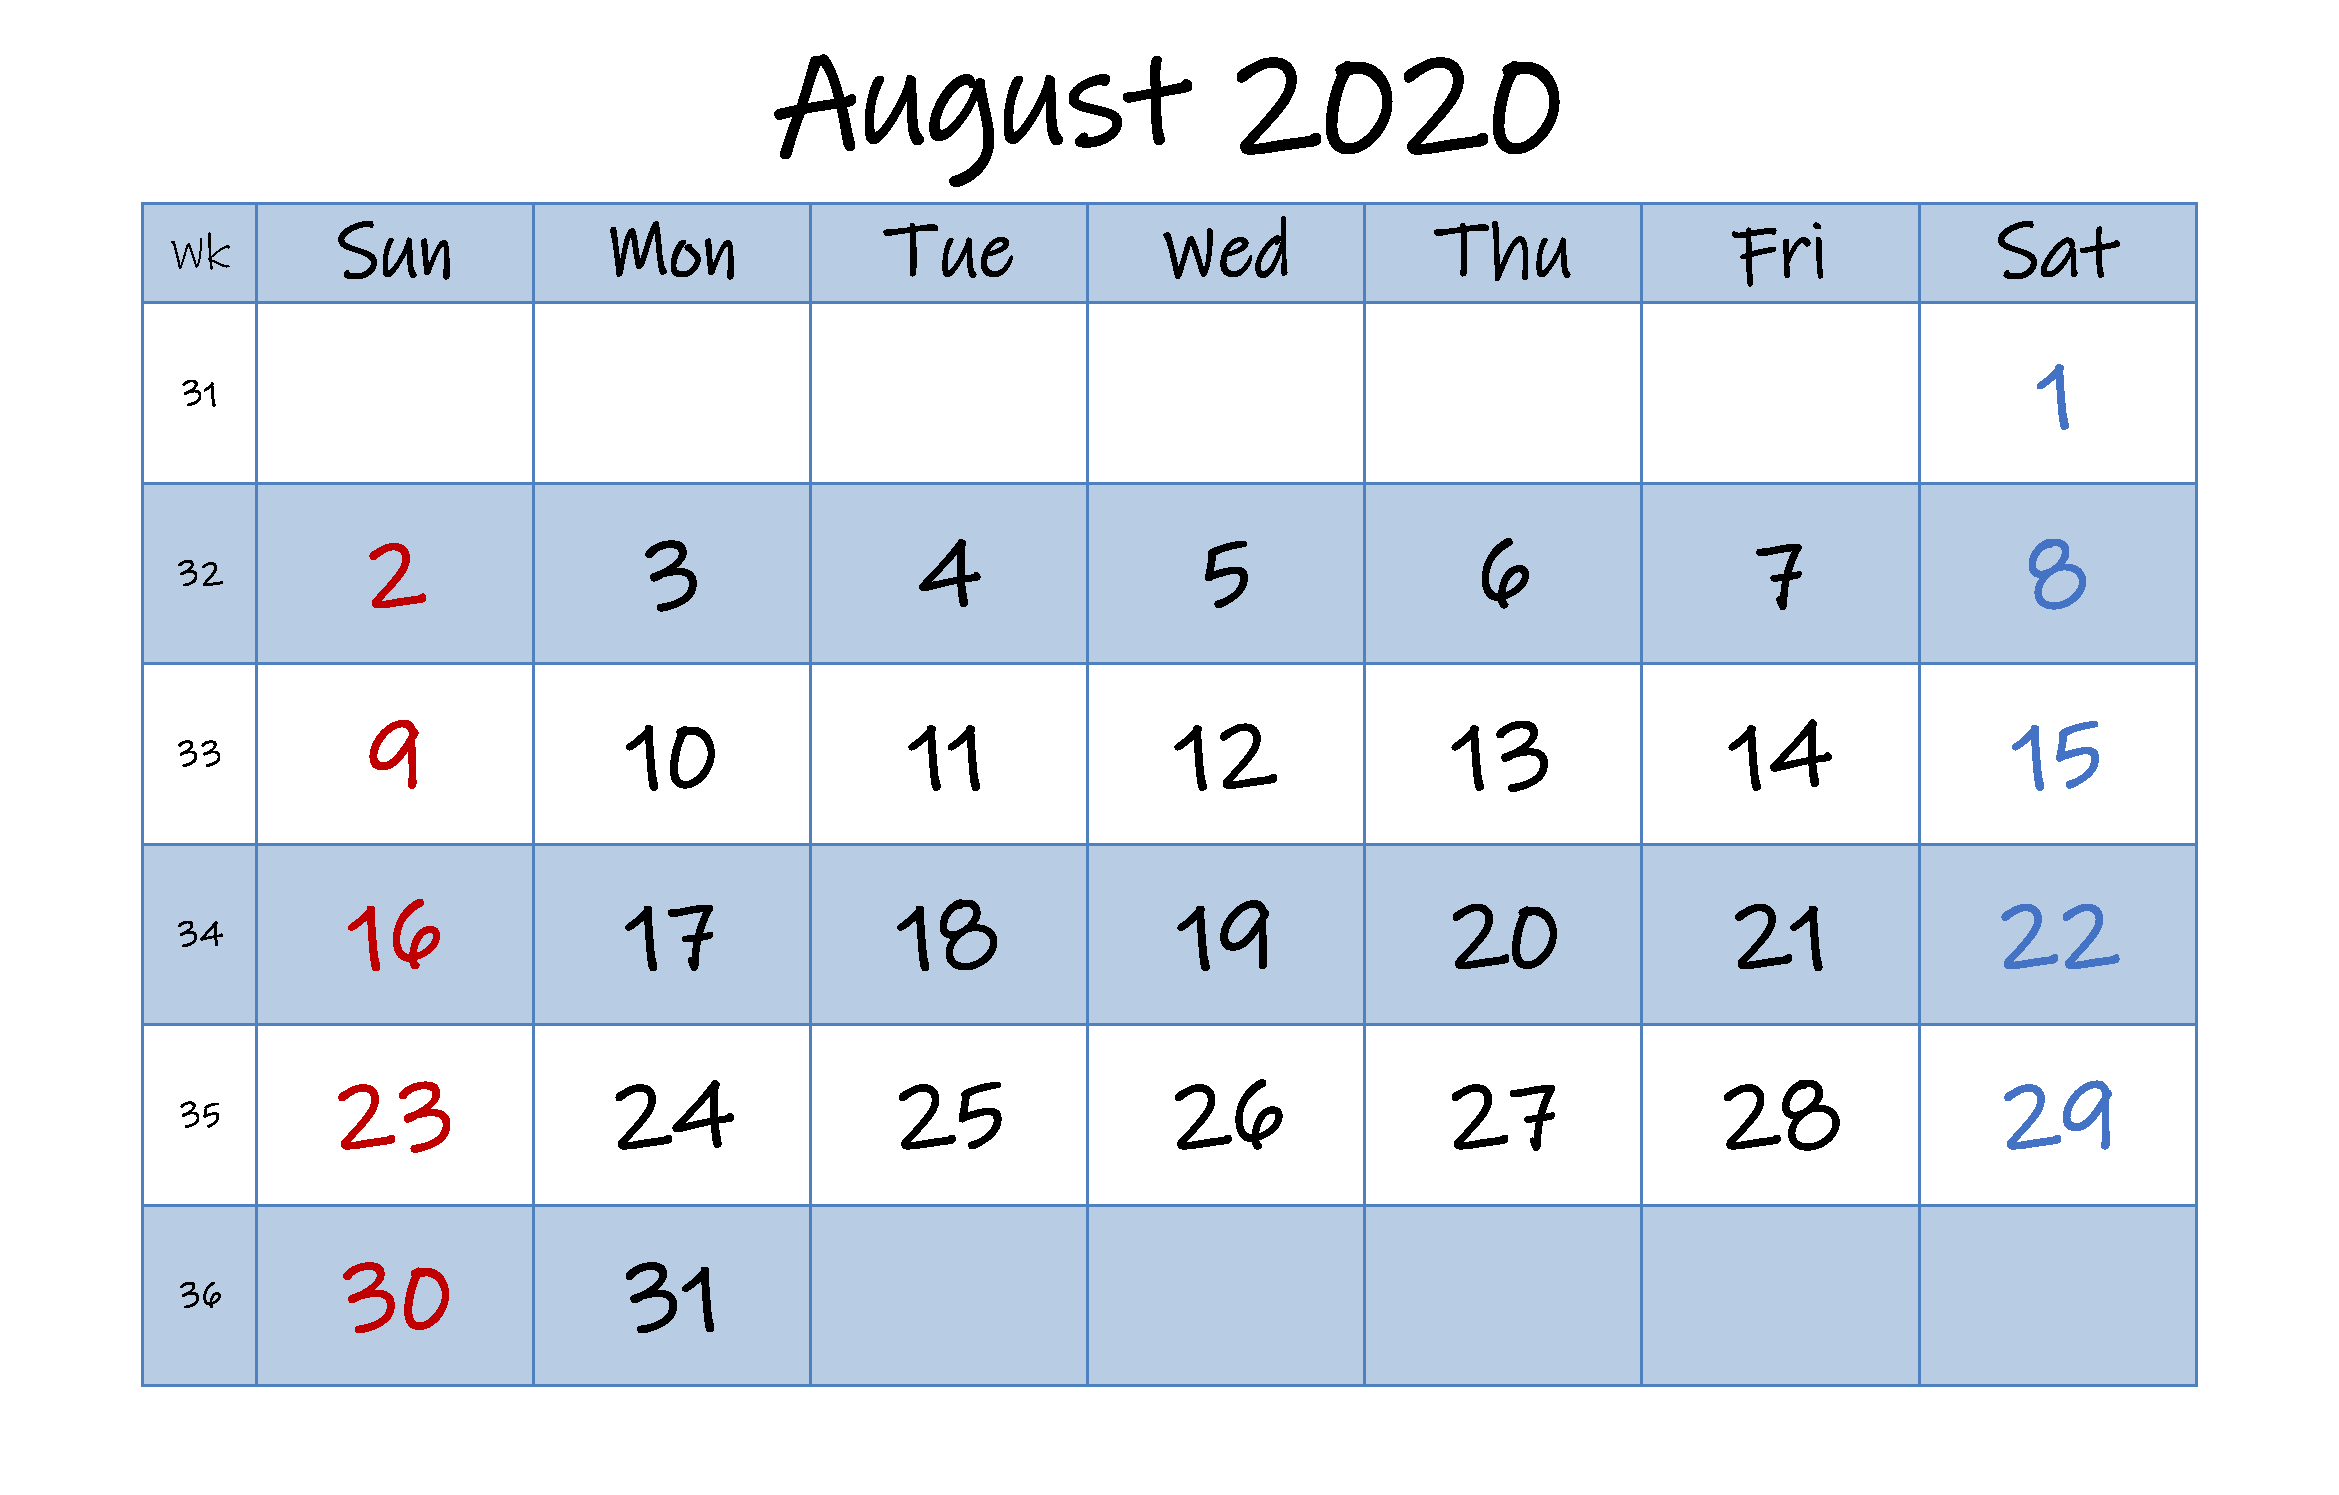 August 2020 Calendar Page